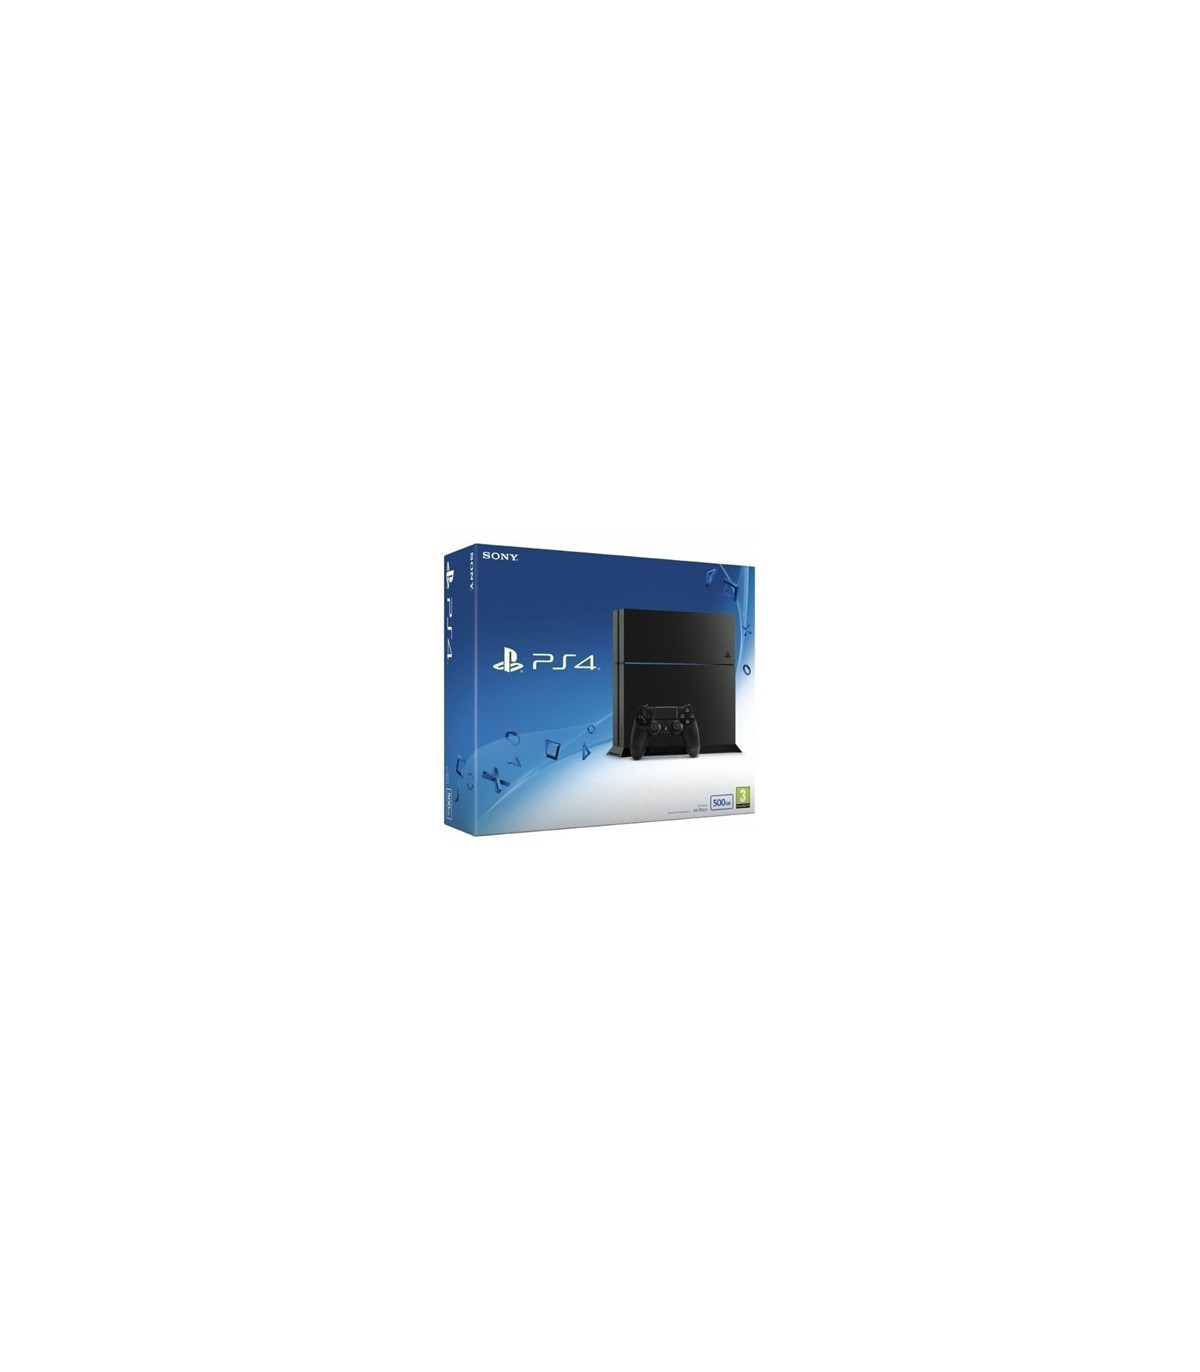 Sony Playstation 4 Region 2 CUH-1216B 1 TB Game Console